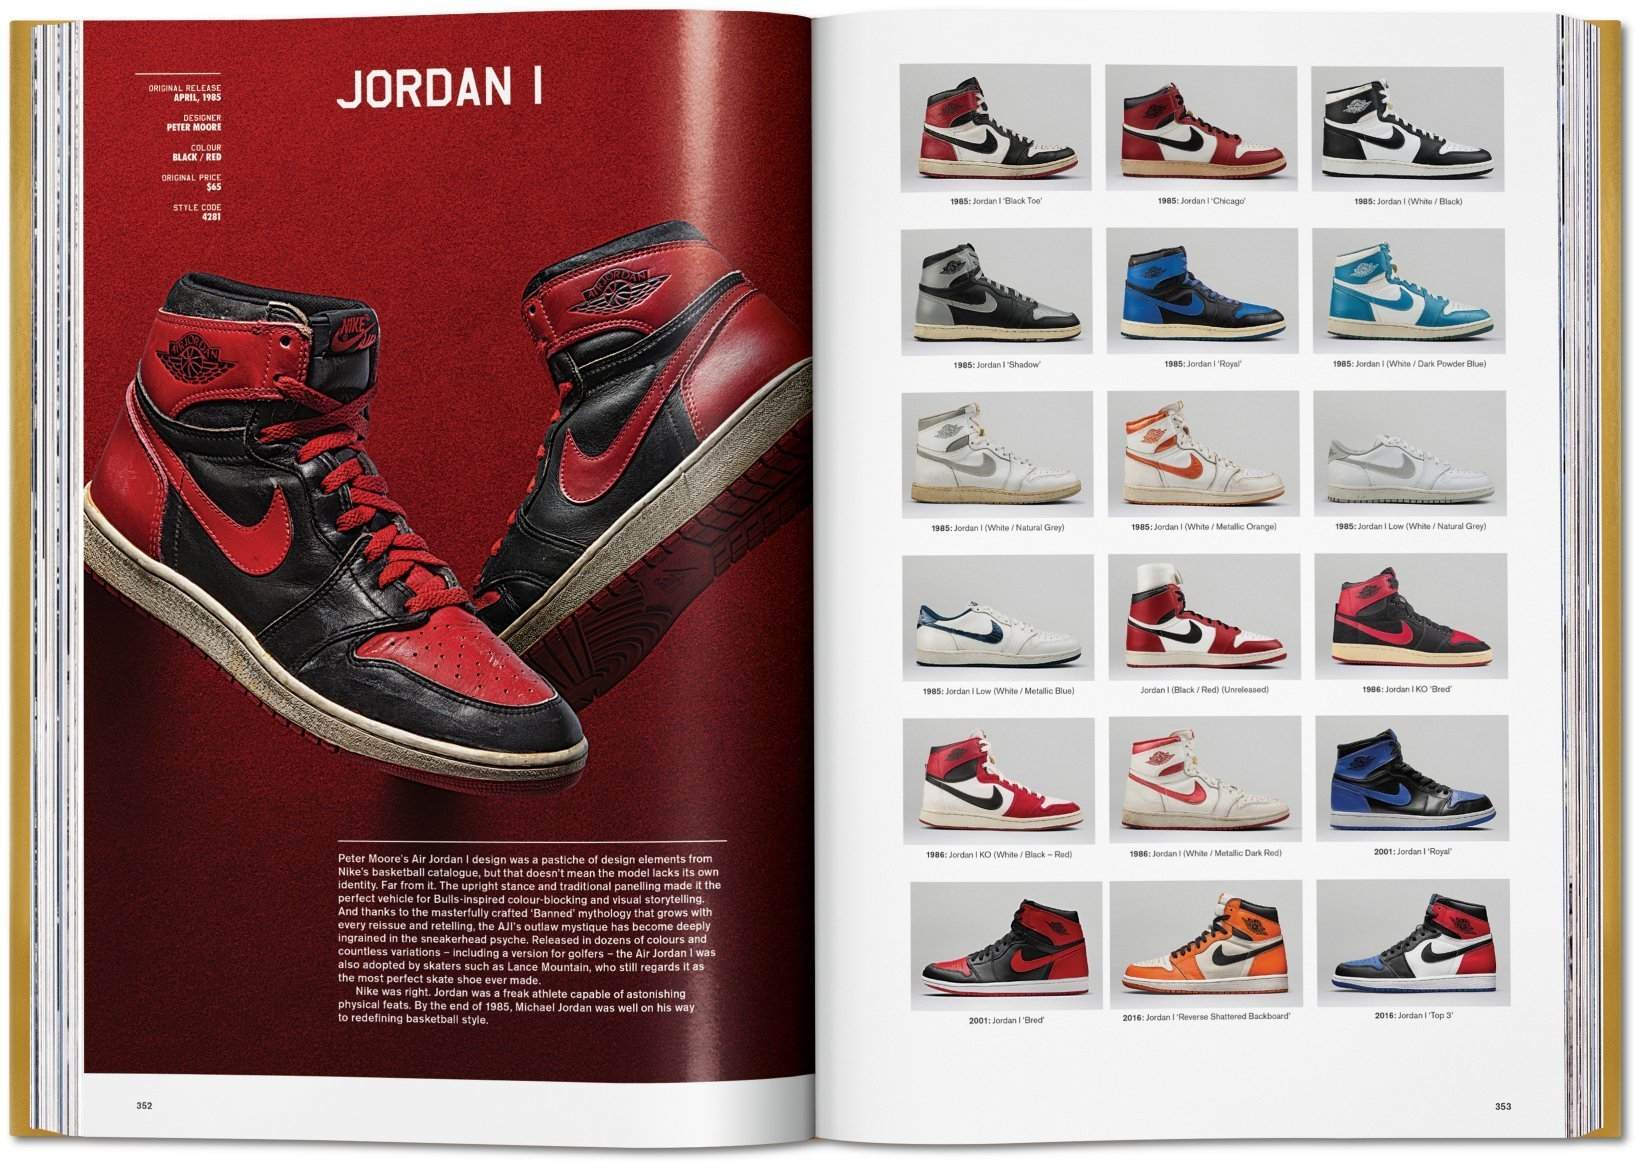 d24f272b6b The Ultimate Sneaker Book - image 4 · Sneaker Freaker. The Ultimate Sneaker  Book - image 5 ...